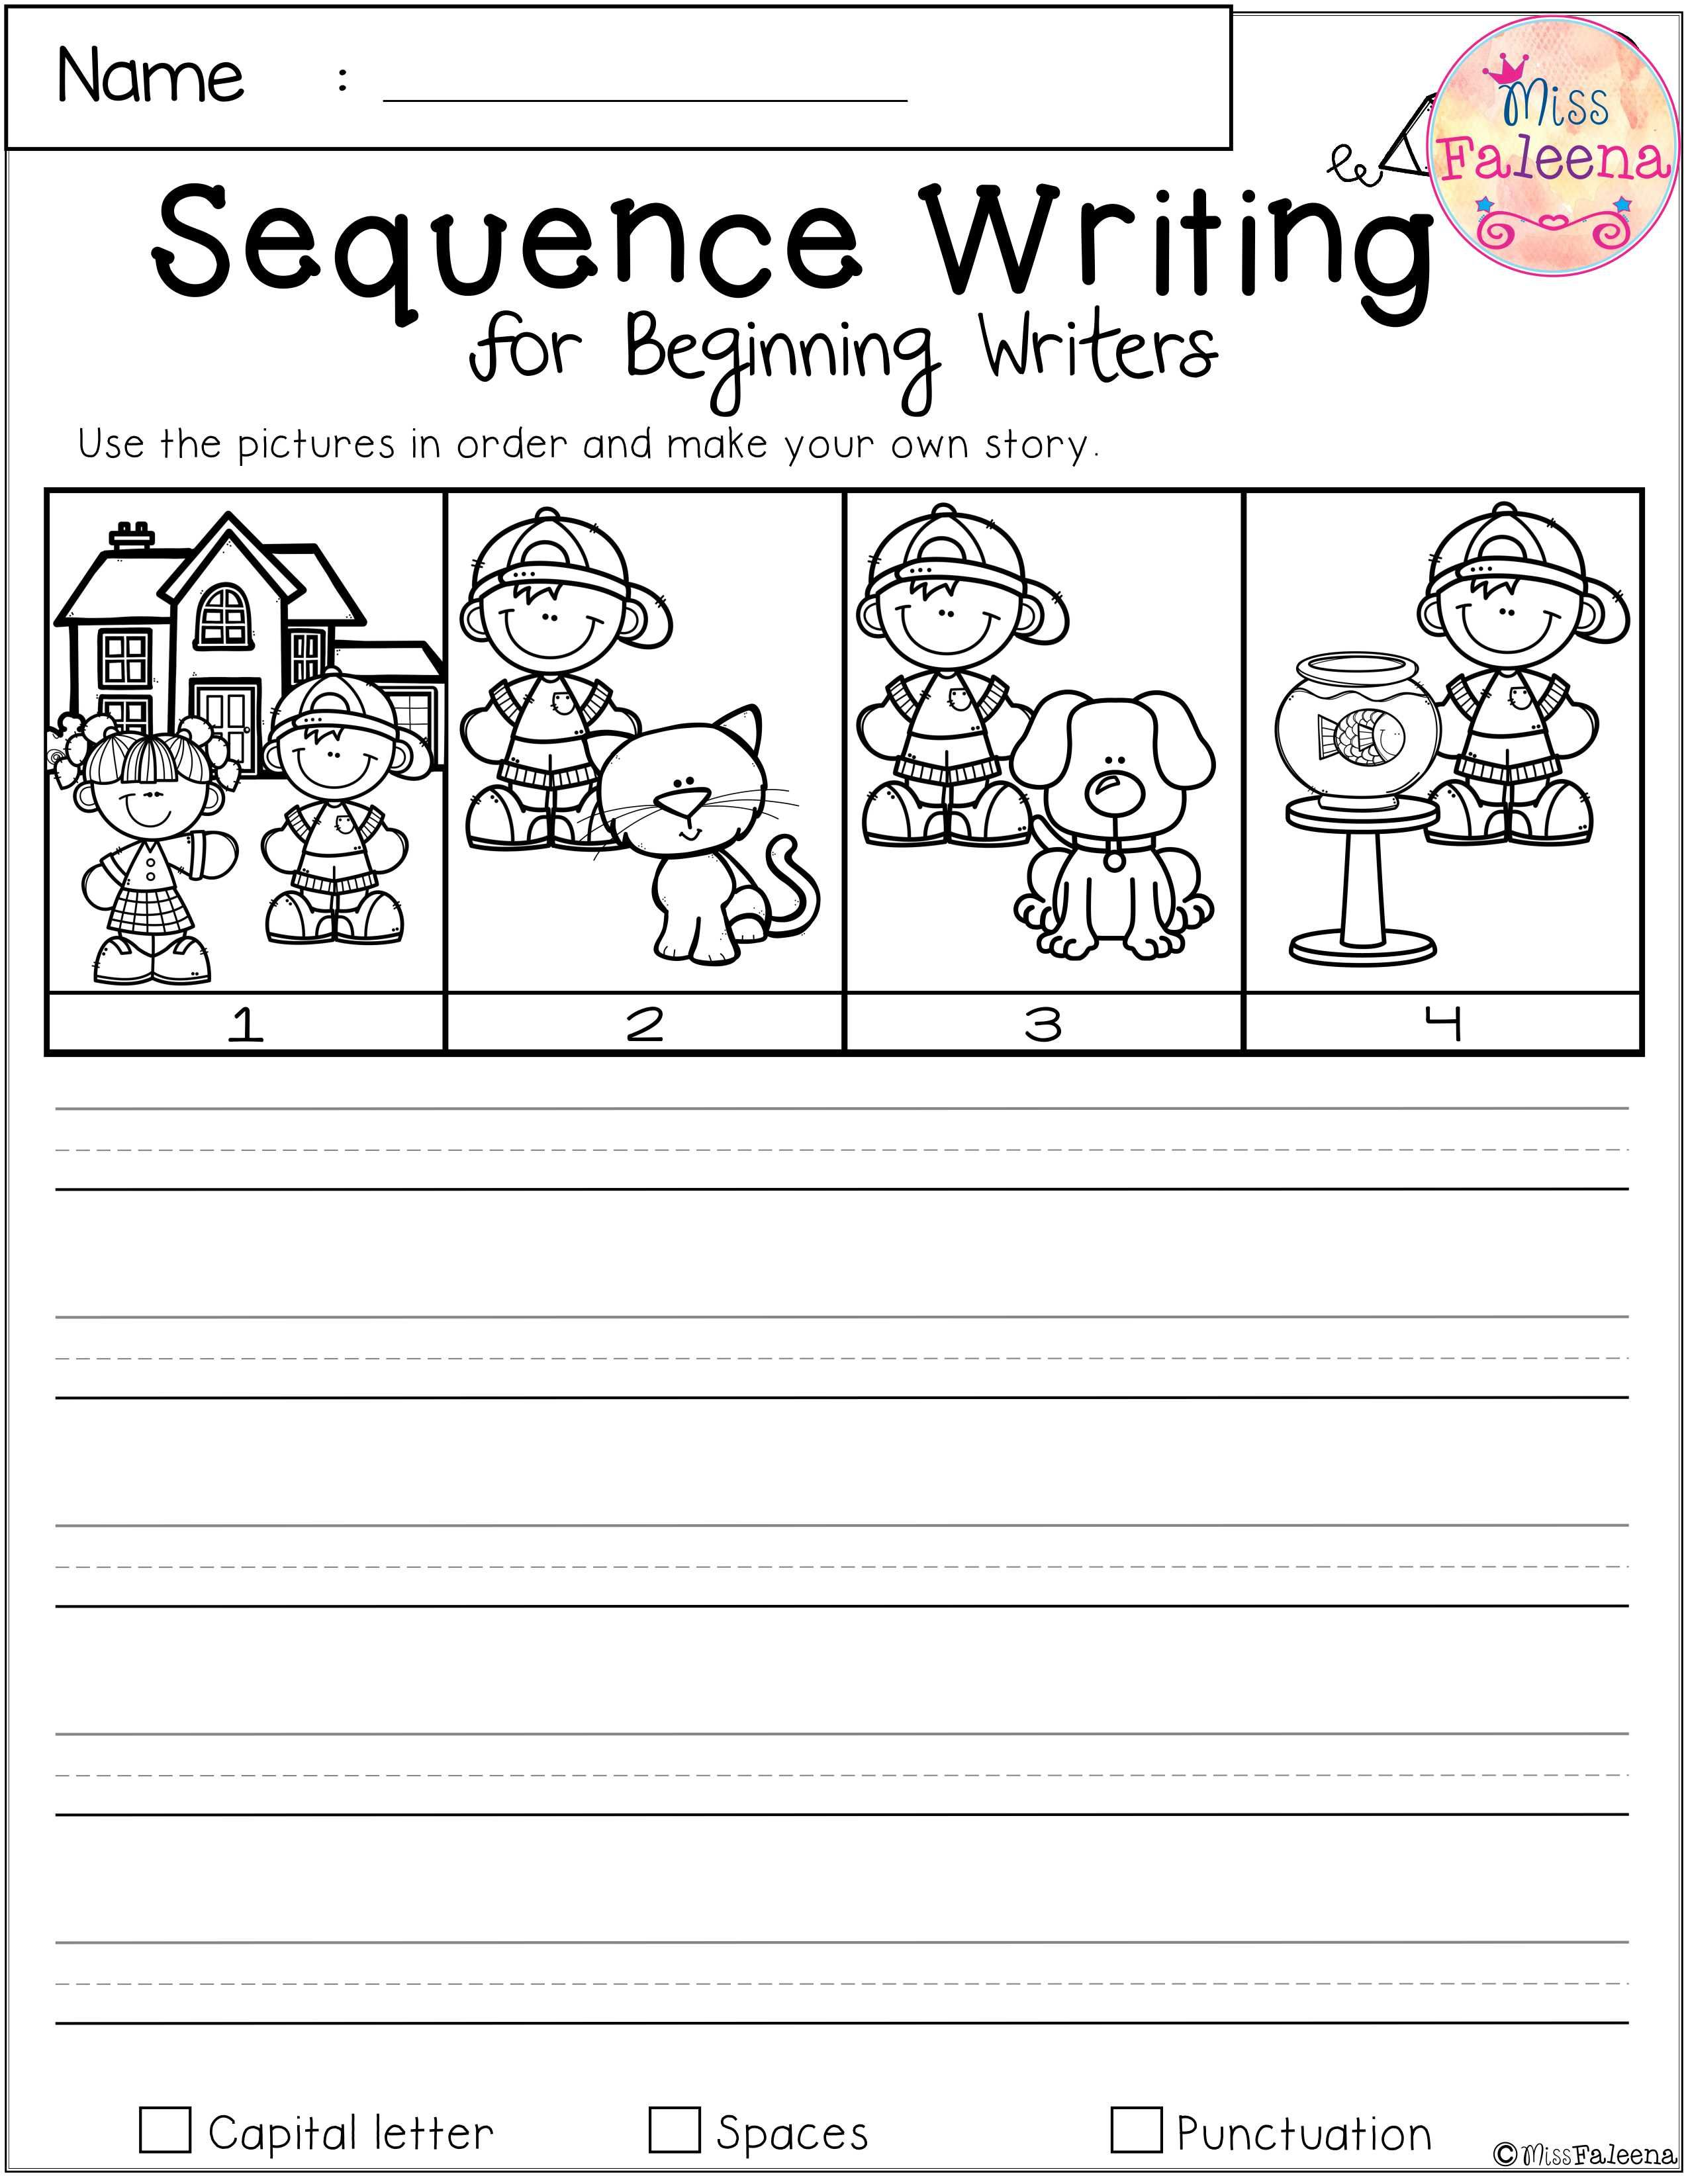 Free Sequence Writing For Beginning Writers Sequence Writing Sequencing Worksheets Kindergarten Sequencing Worksheets Story writing for kids worksheets